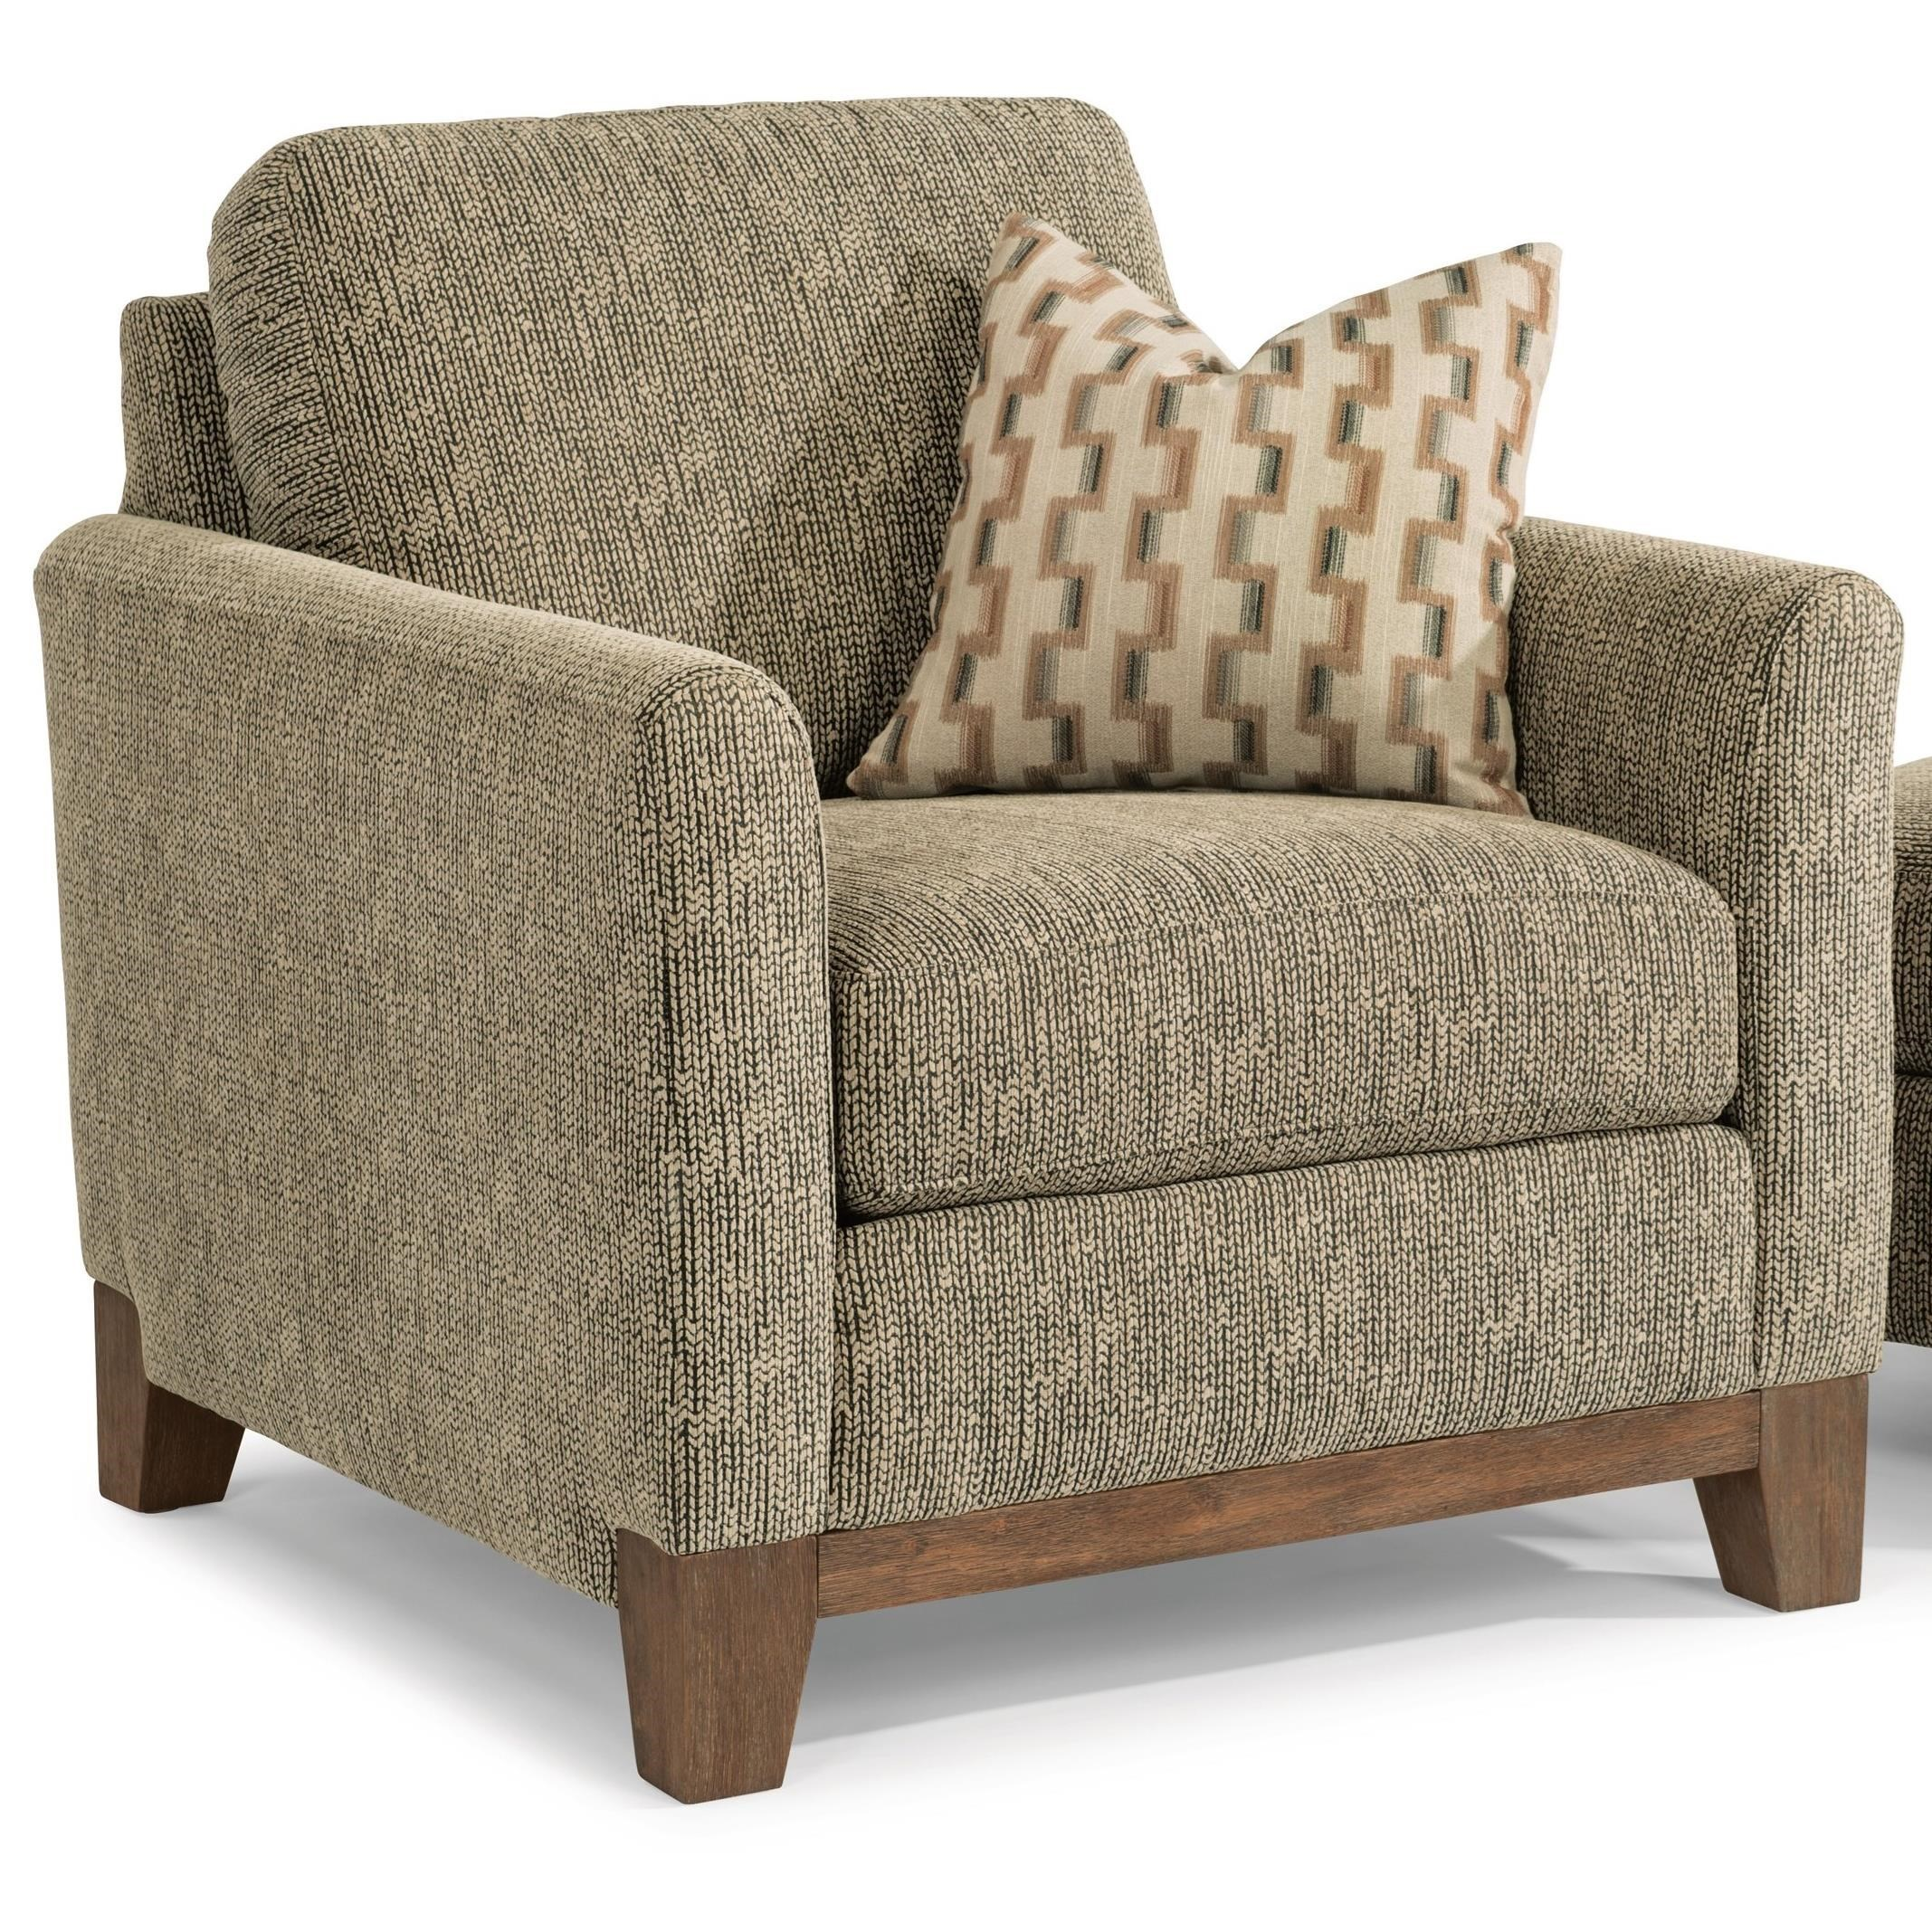 Flexsteel Hampton Transitional Chair With Exposed Wood Base Rail | Belfort  Furniture | Upholstered Chairs